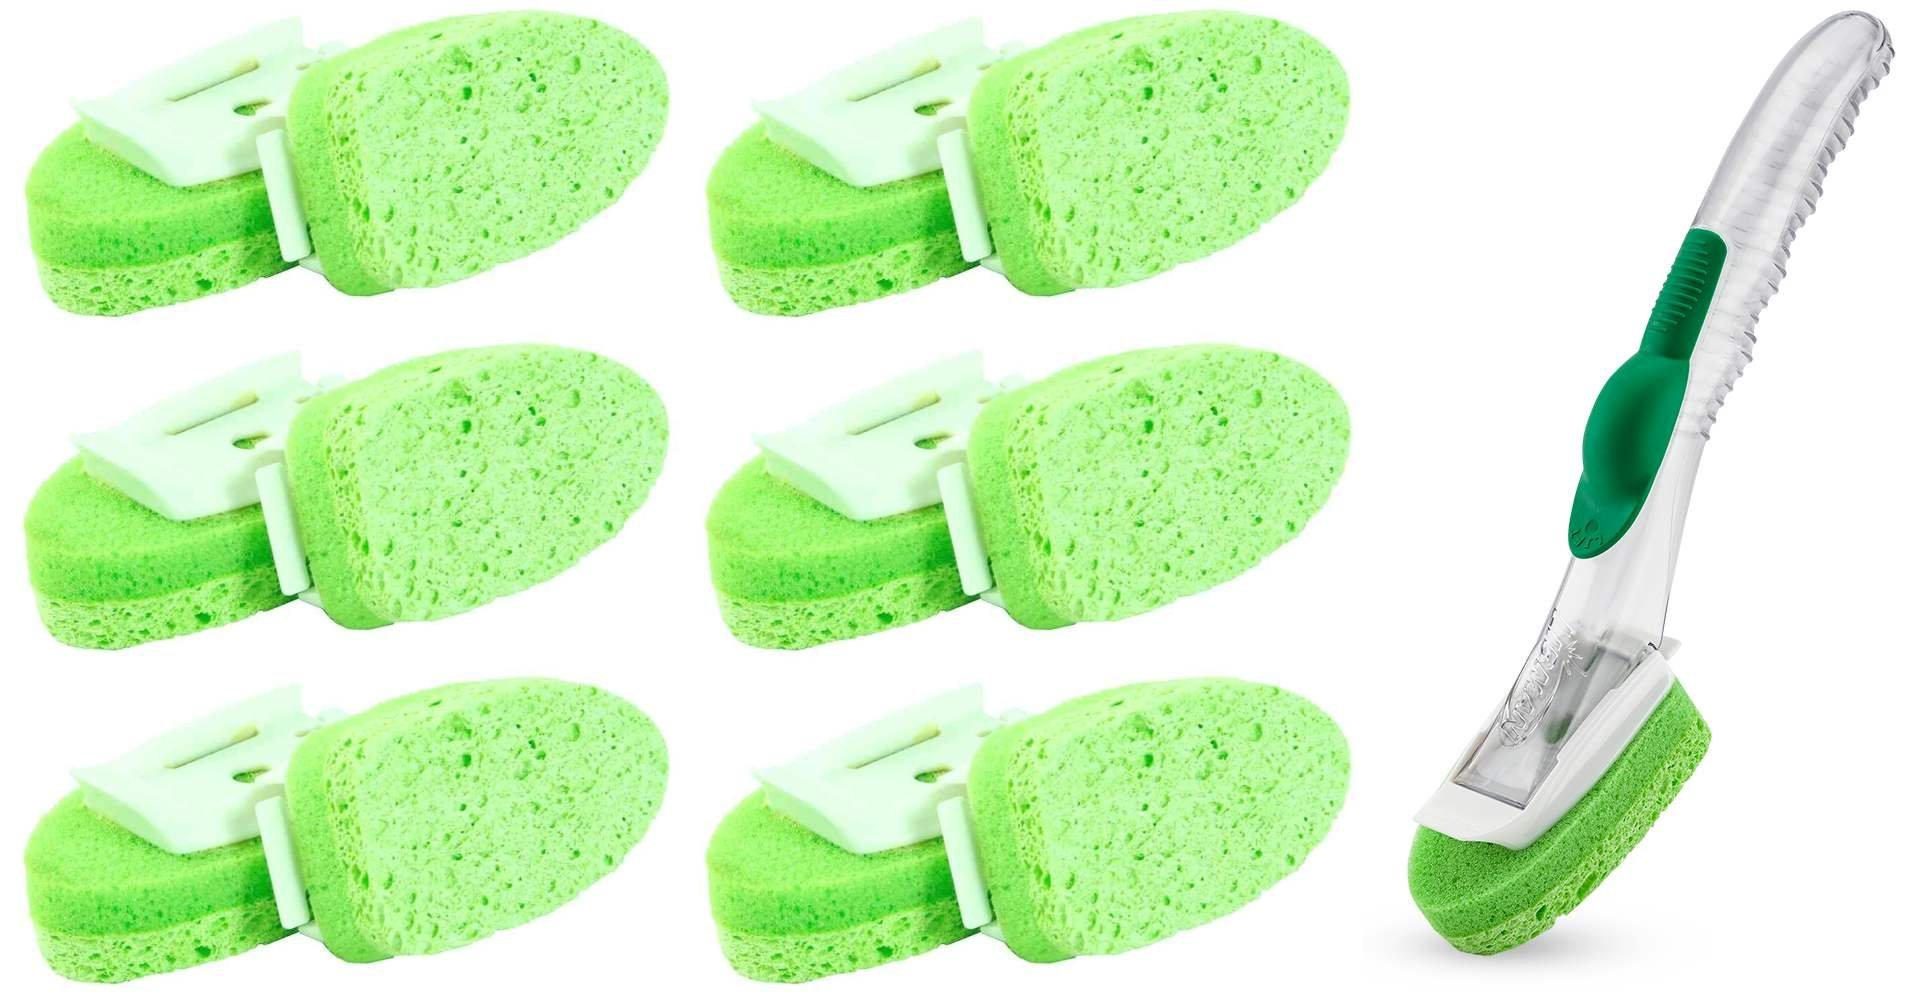 Libman Sponge Refill Dishwashing Dish Sponge Non-Scratch Gentle Touch Wand with 13 Pads